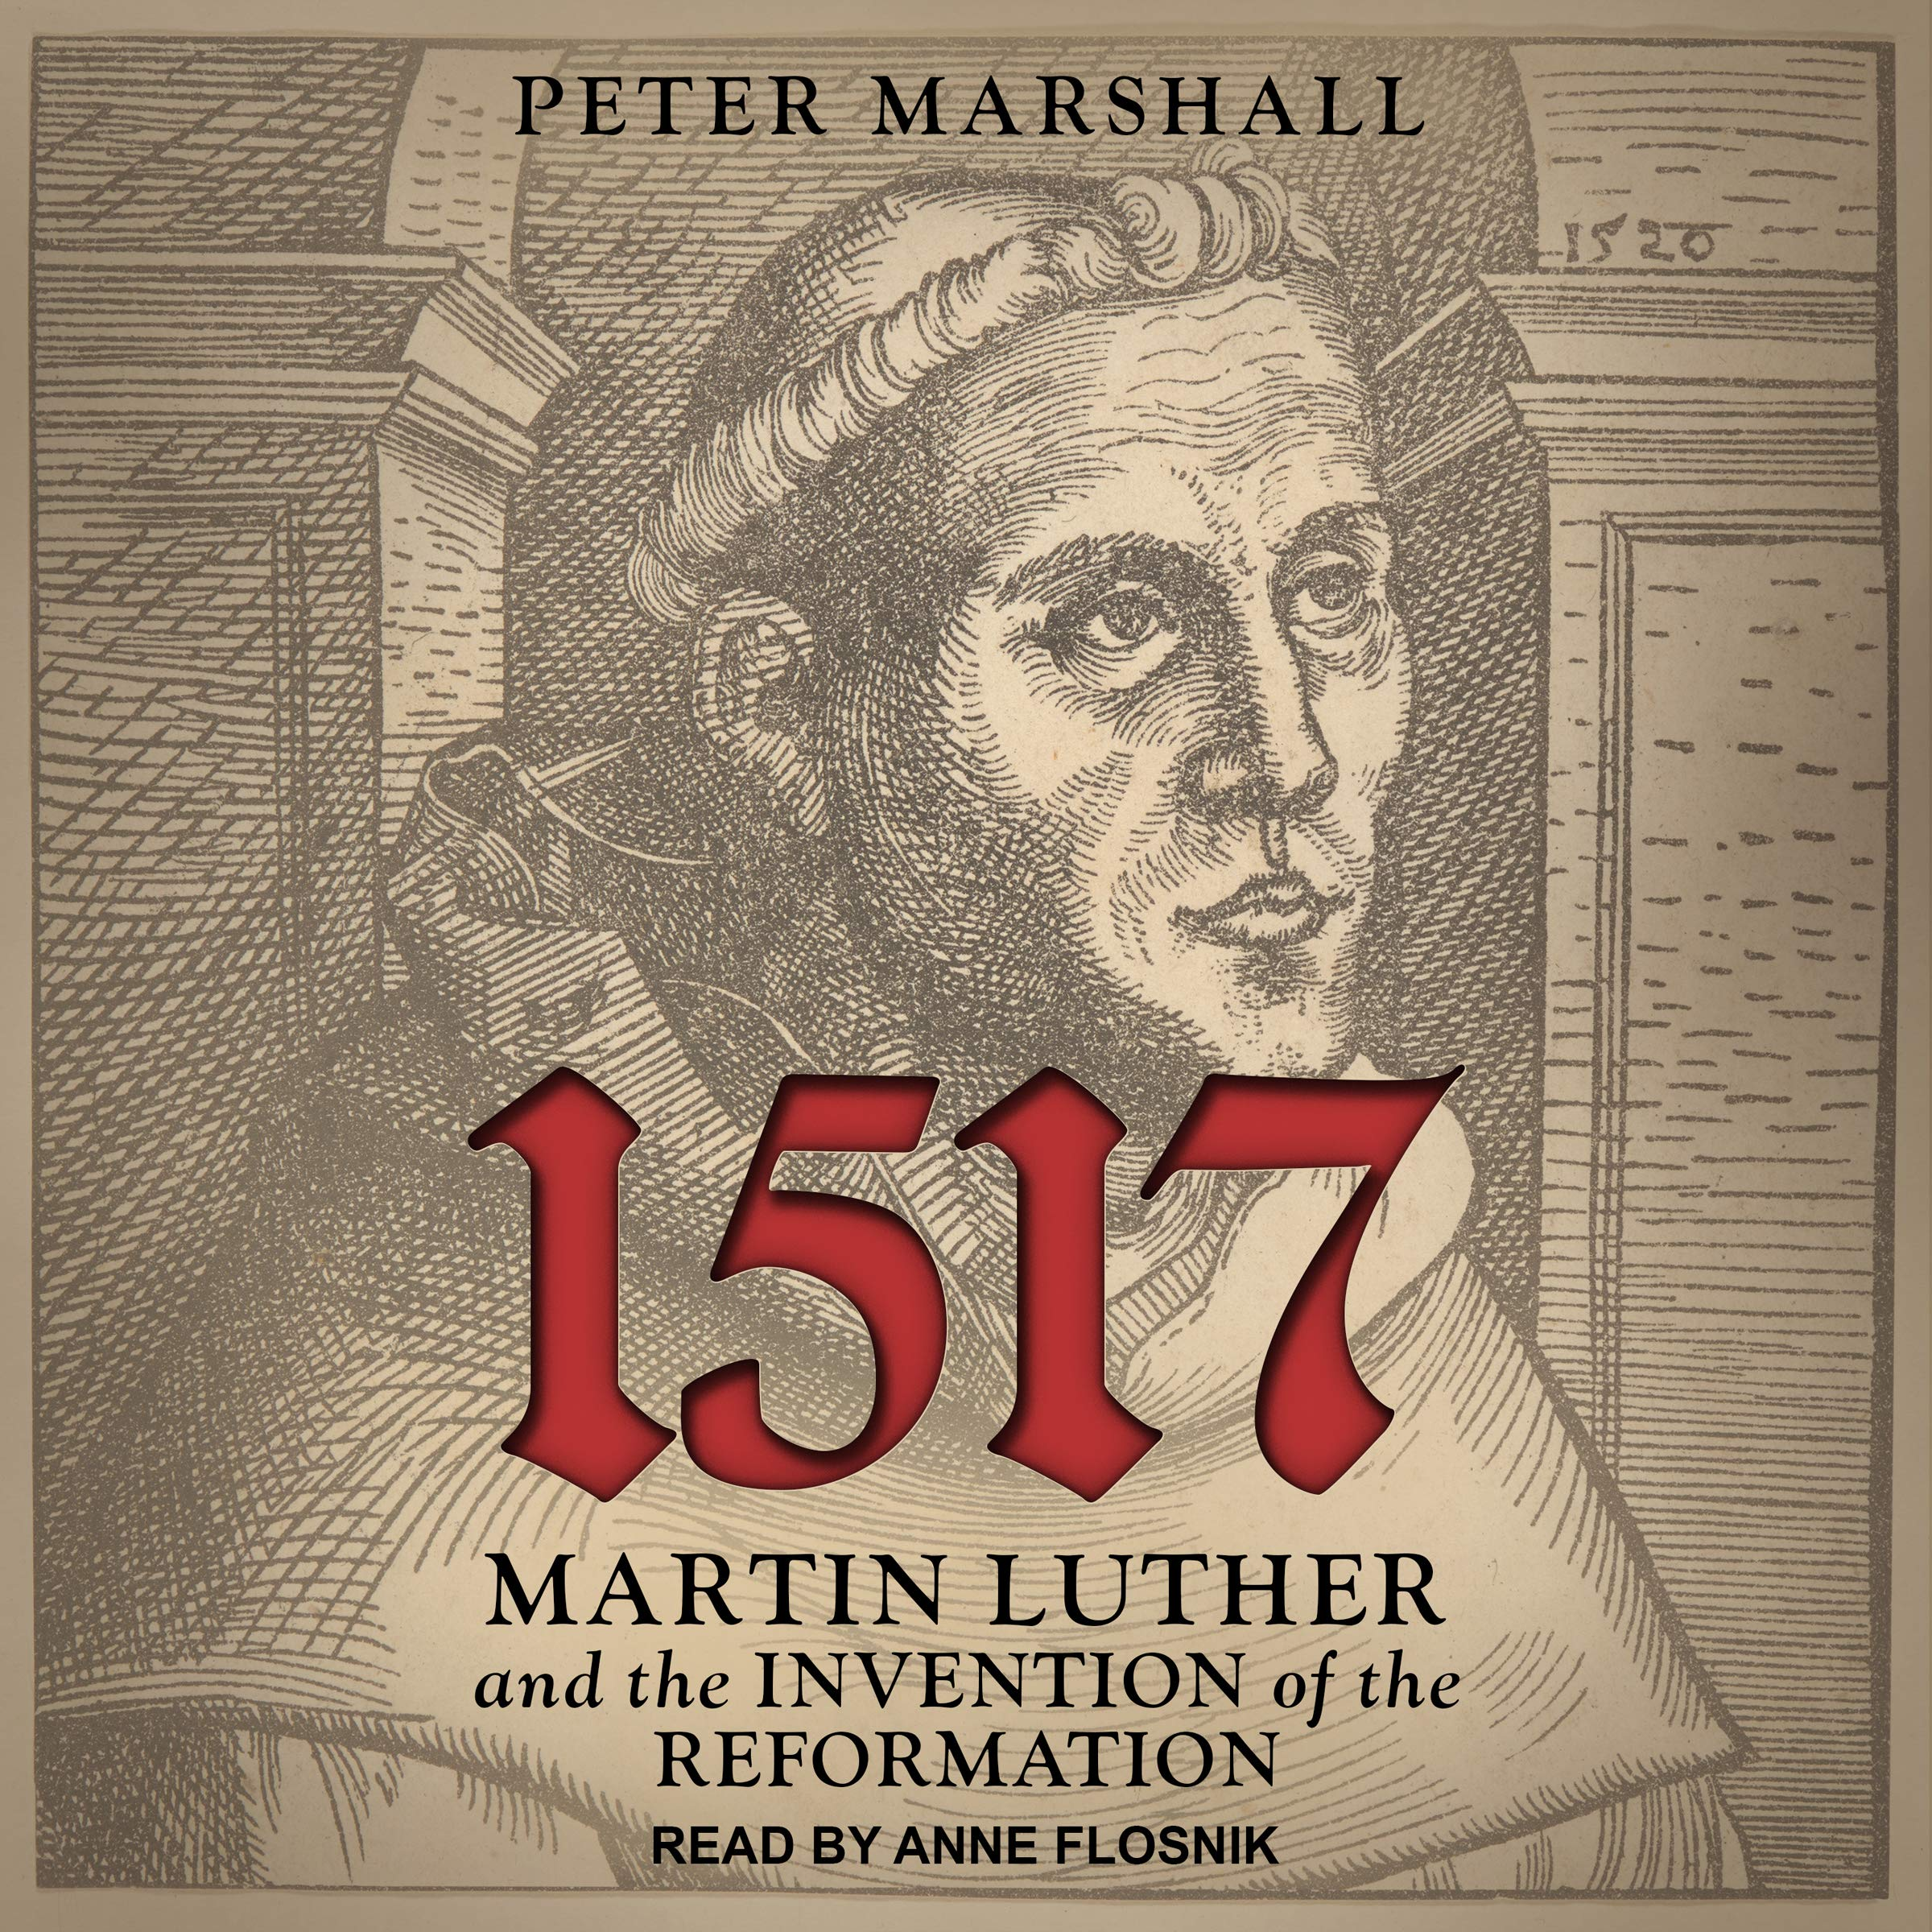 1517: Martin Luther and the Invention of the Reformation